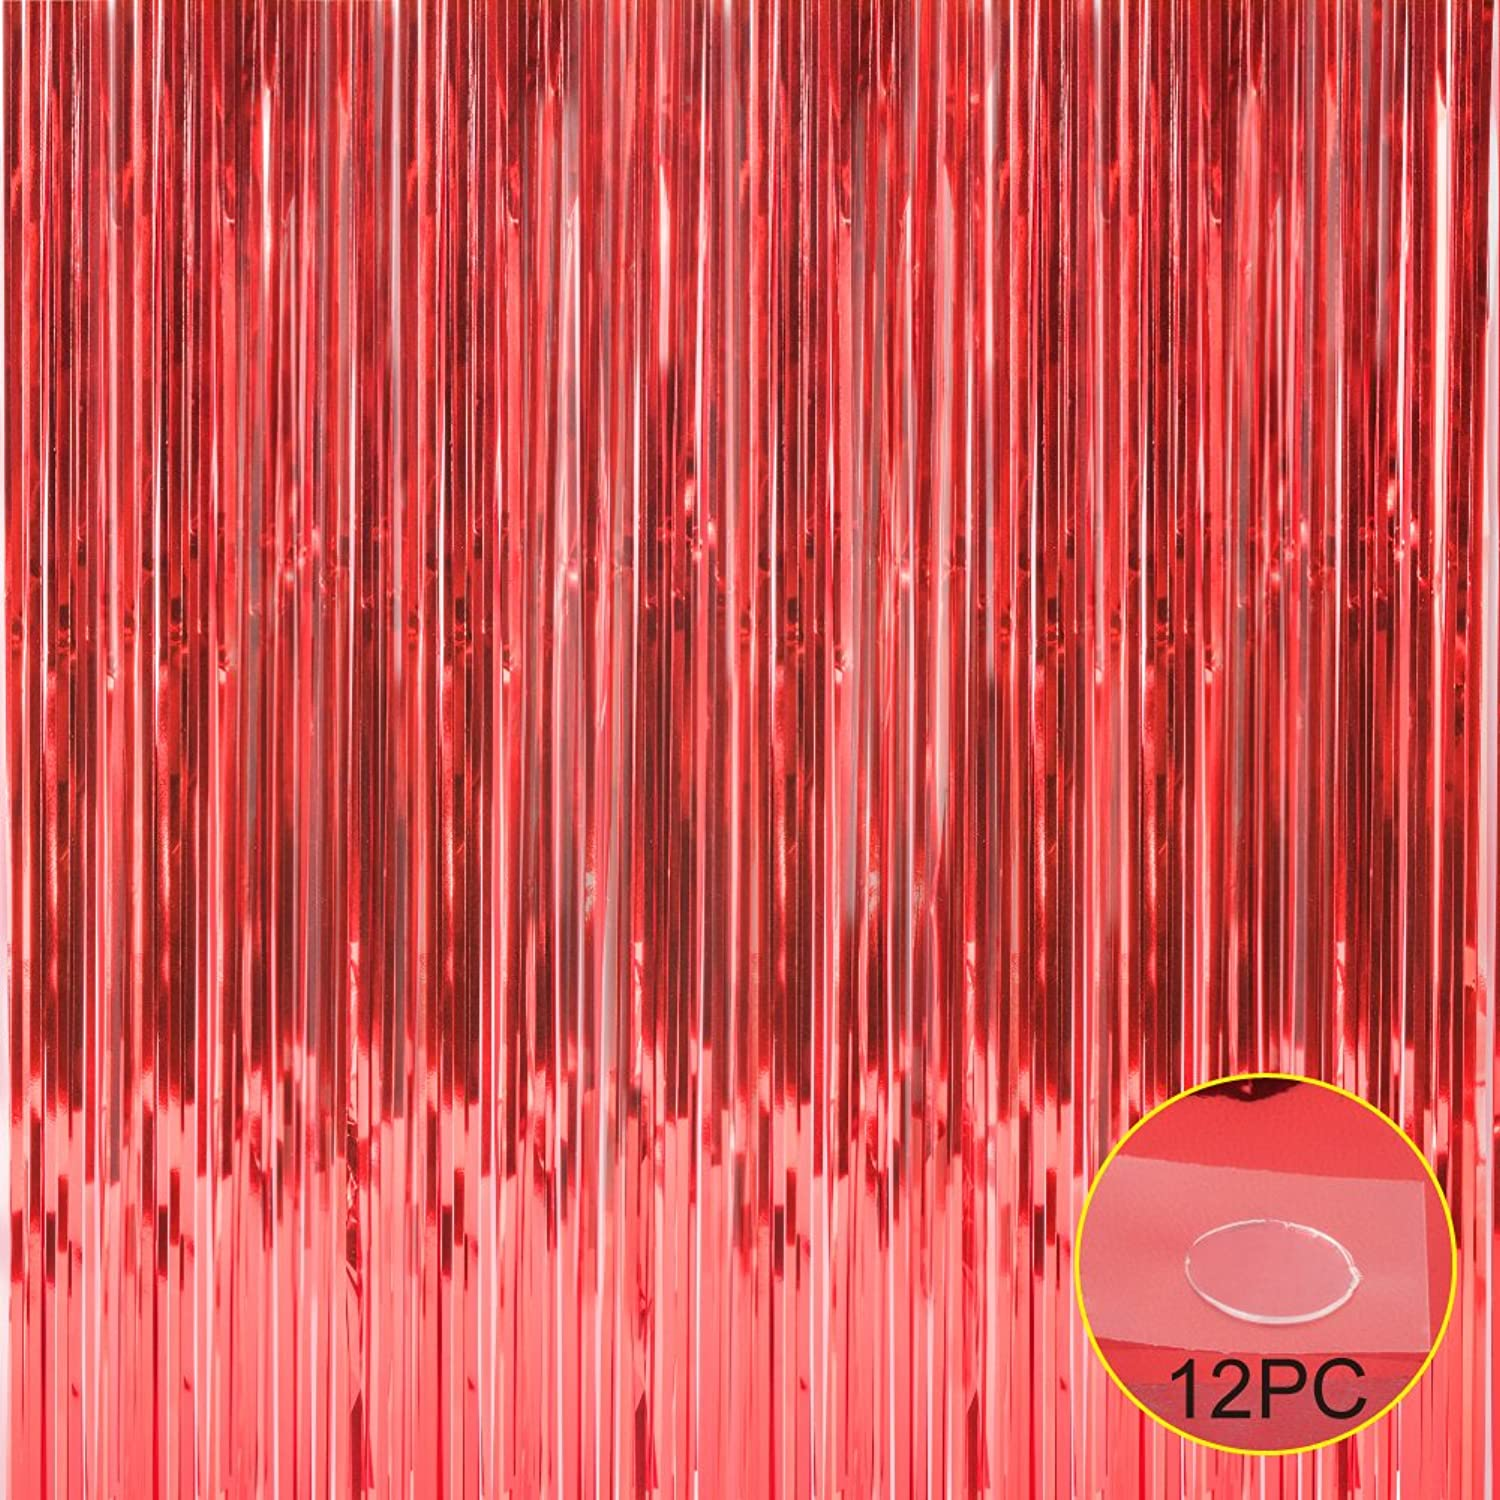 Foil Fringe Metallic Curtain Backdrops - with Balloon Sticks 3.3FTX6.6FT Tinsel Shiny Curtains Perfect for Photo Booth Party Window Door Decorative Fringe Curtains,1 Pair Red